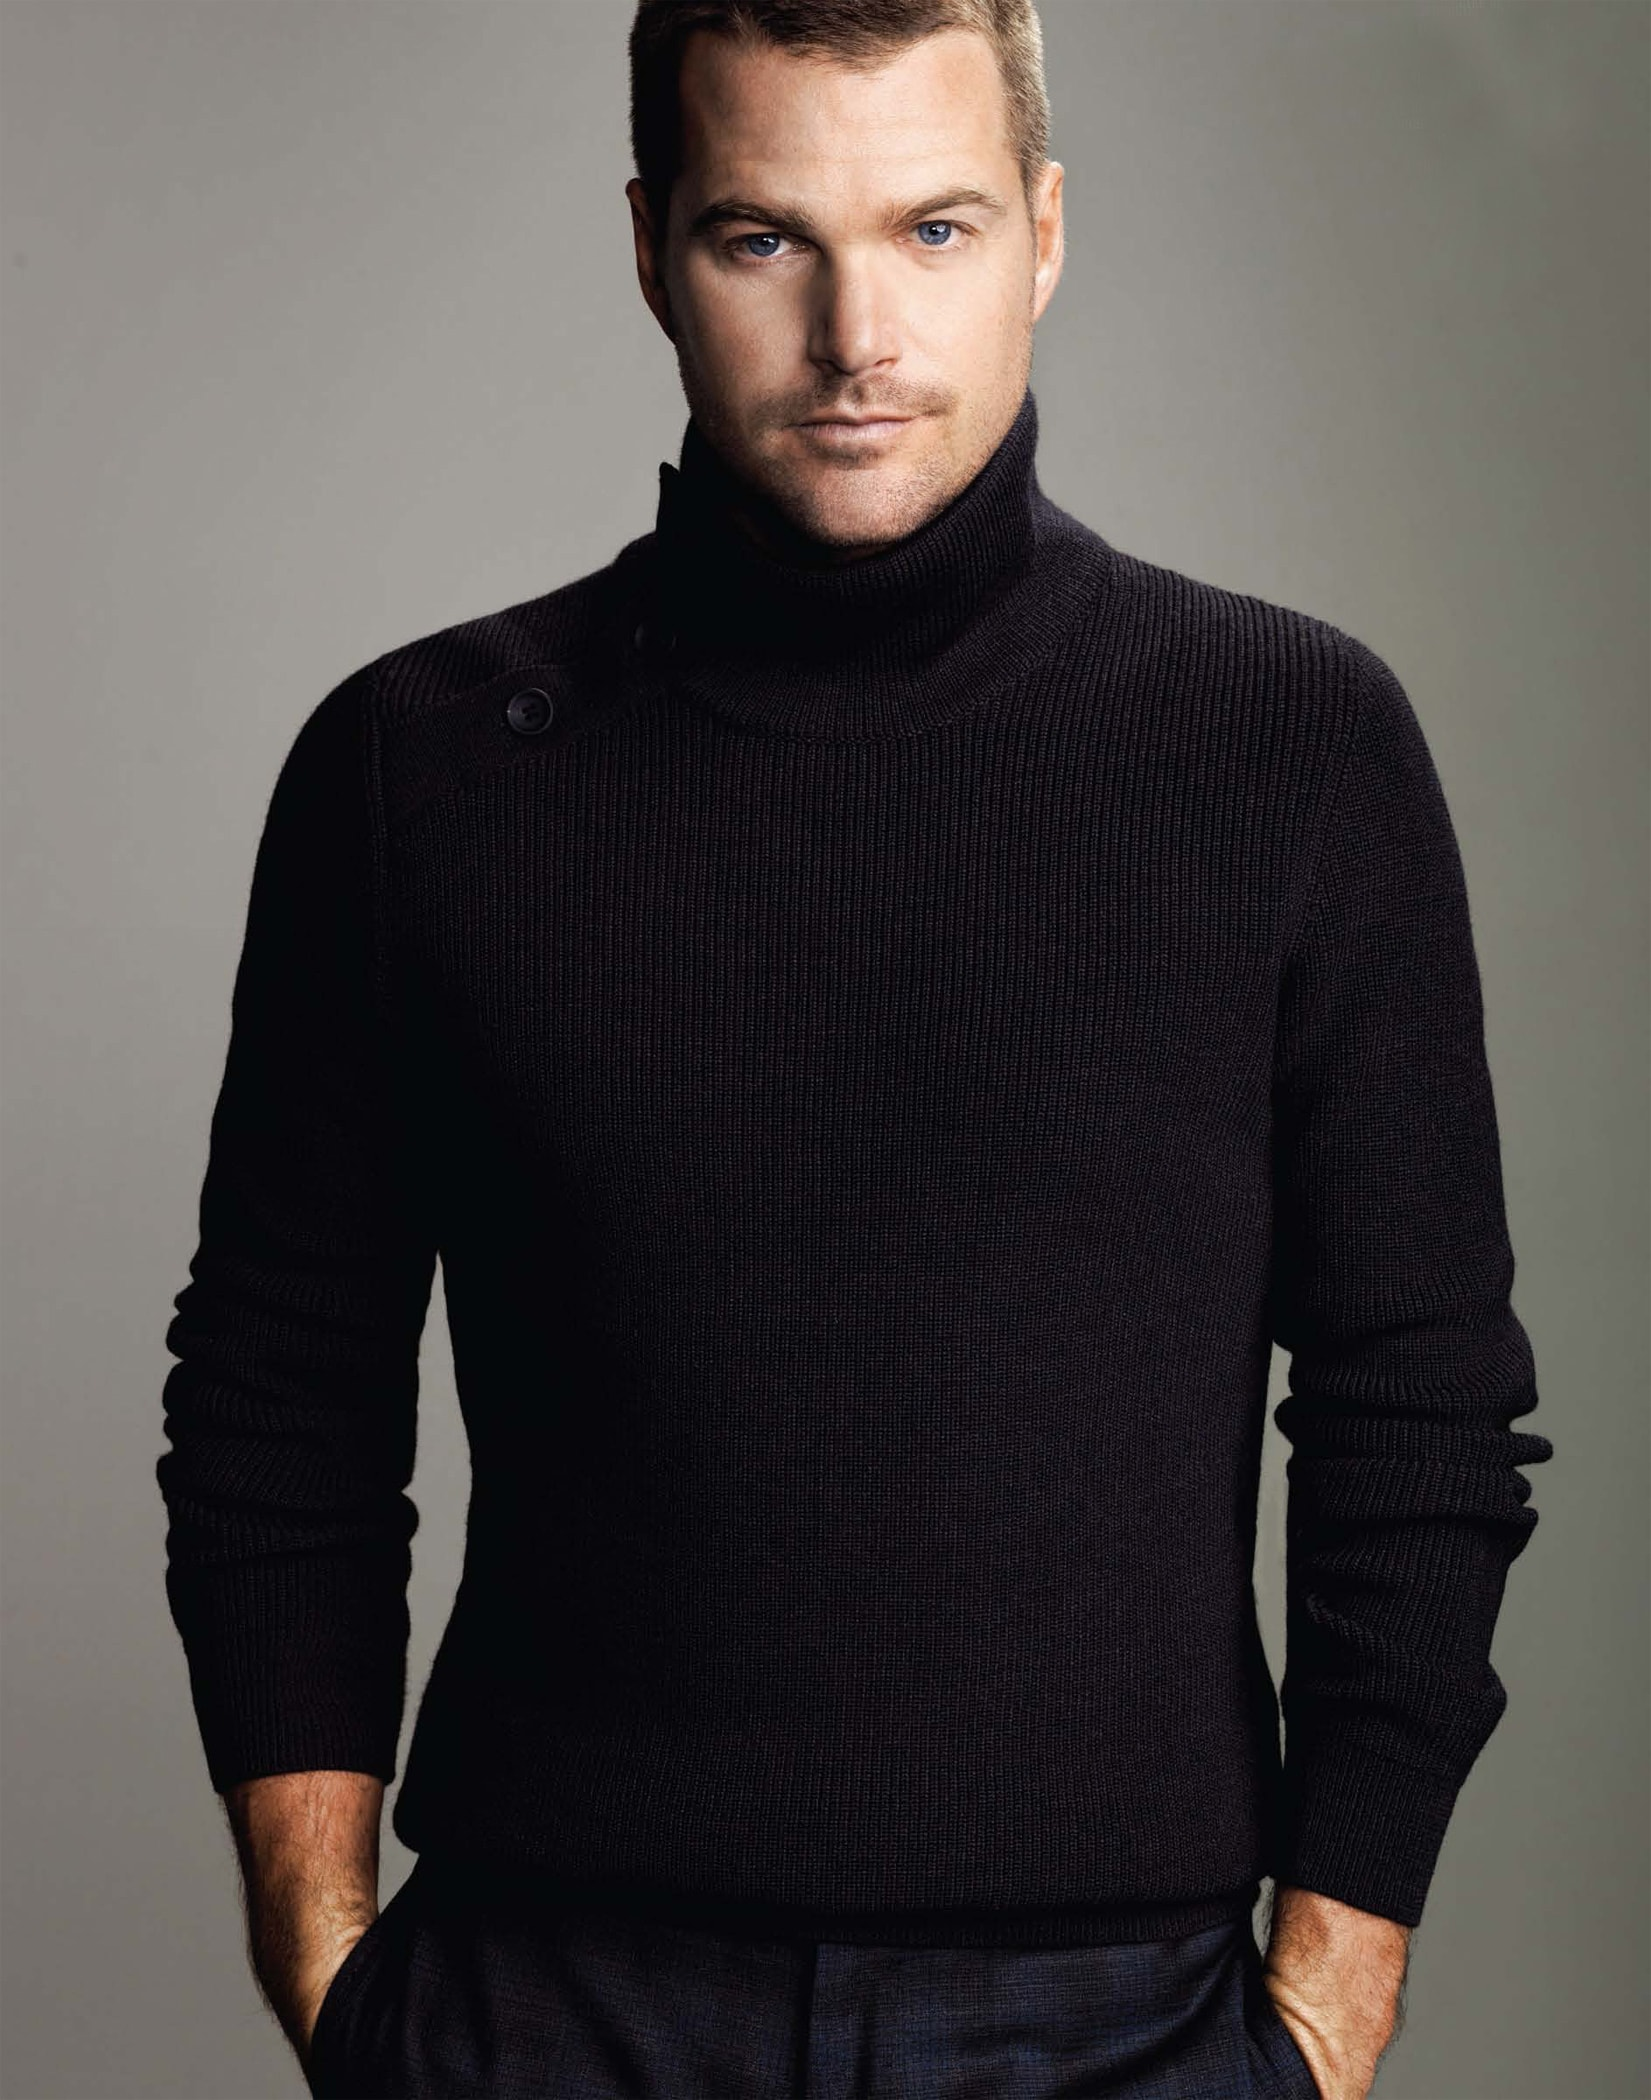 Chris O'Donnell HQ wallpapers